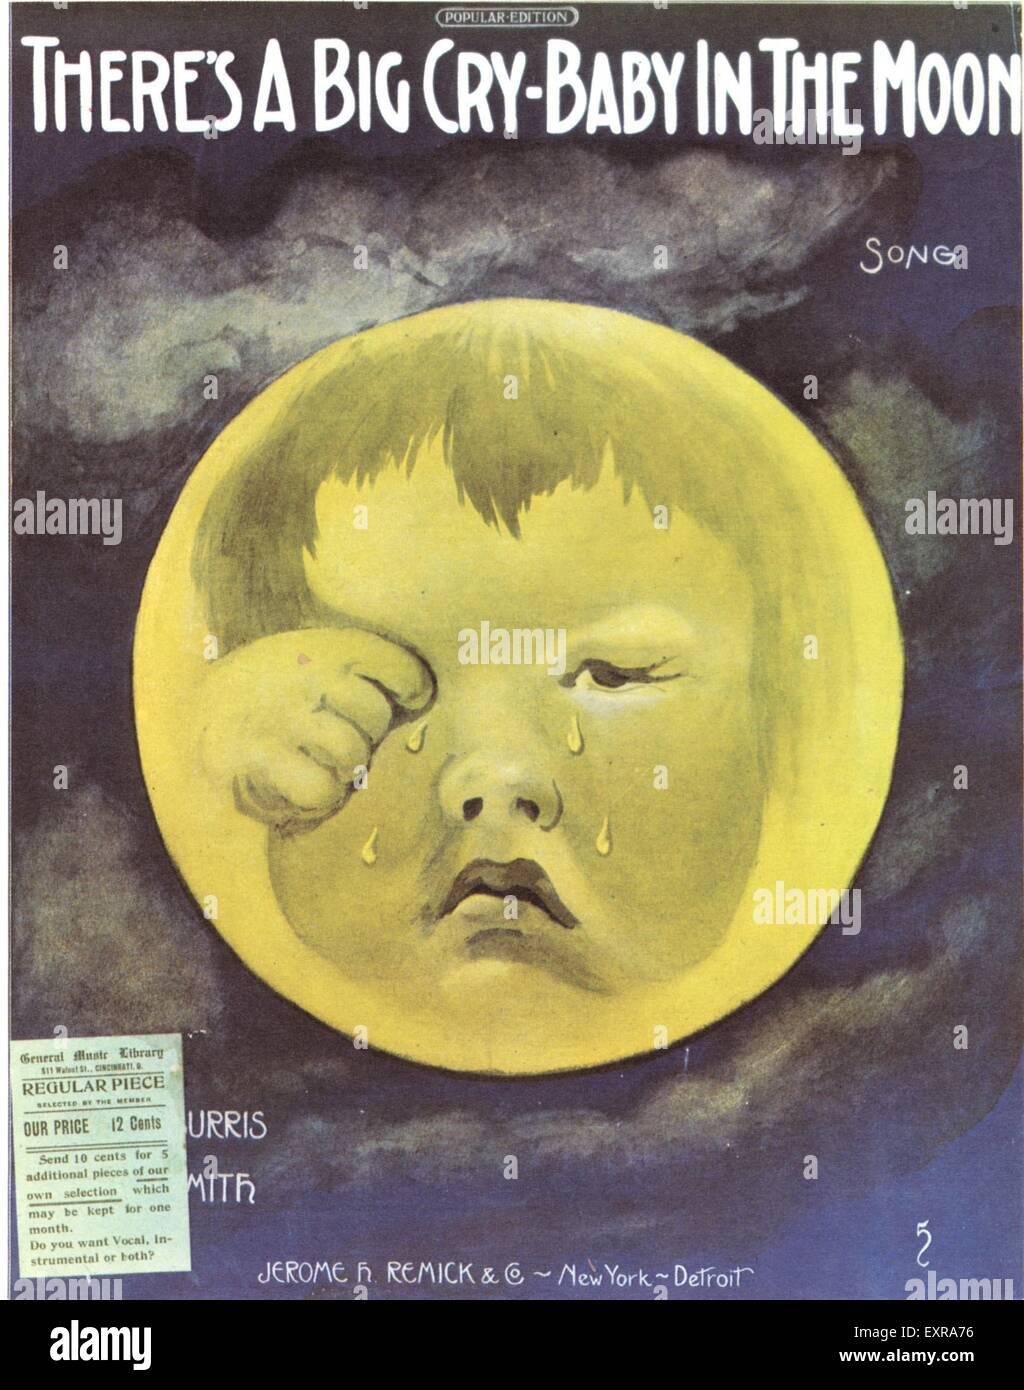 1930s USA Man in the Moon Sheet Music Cover - Stock Image